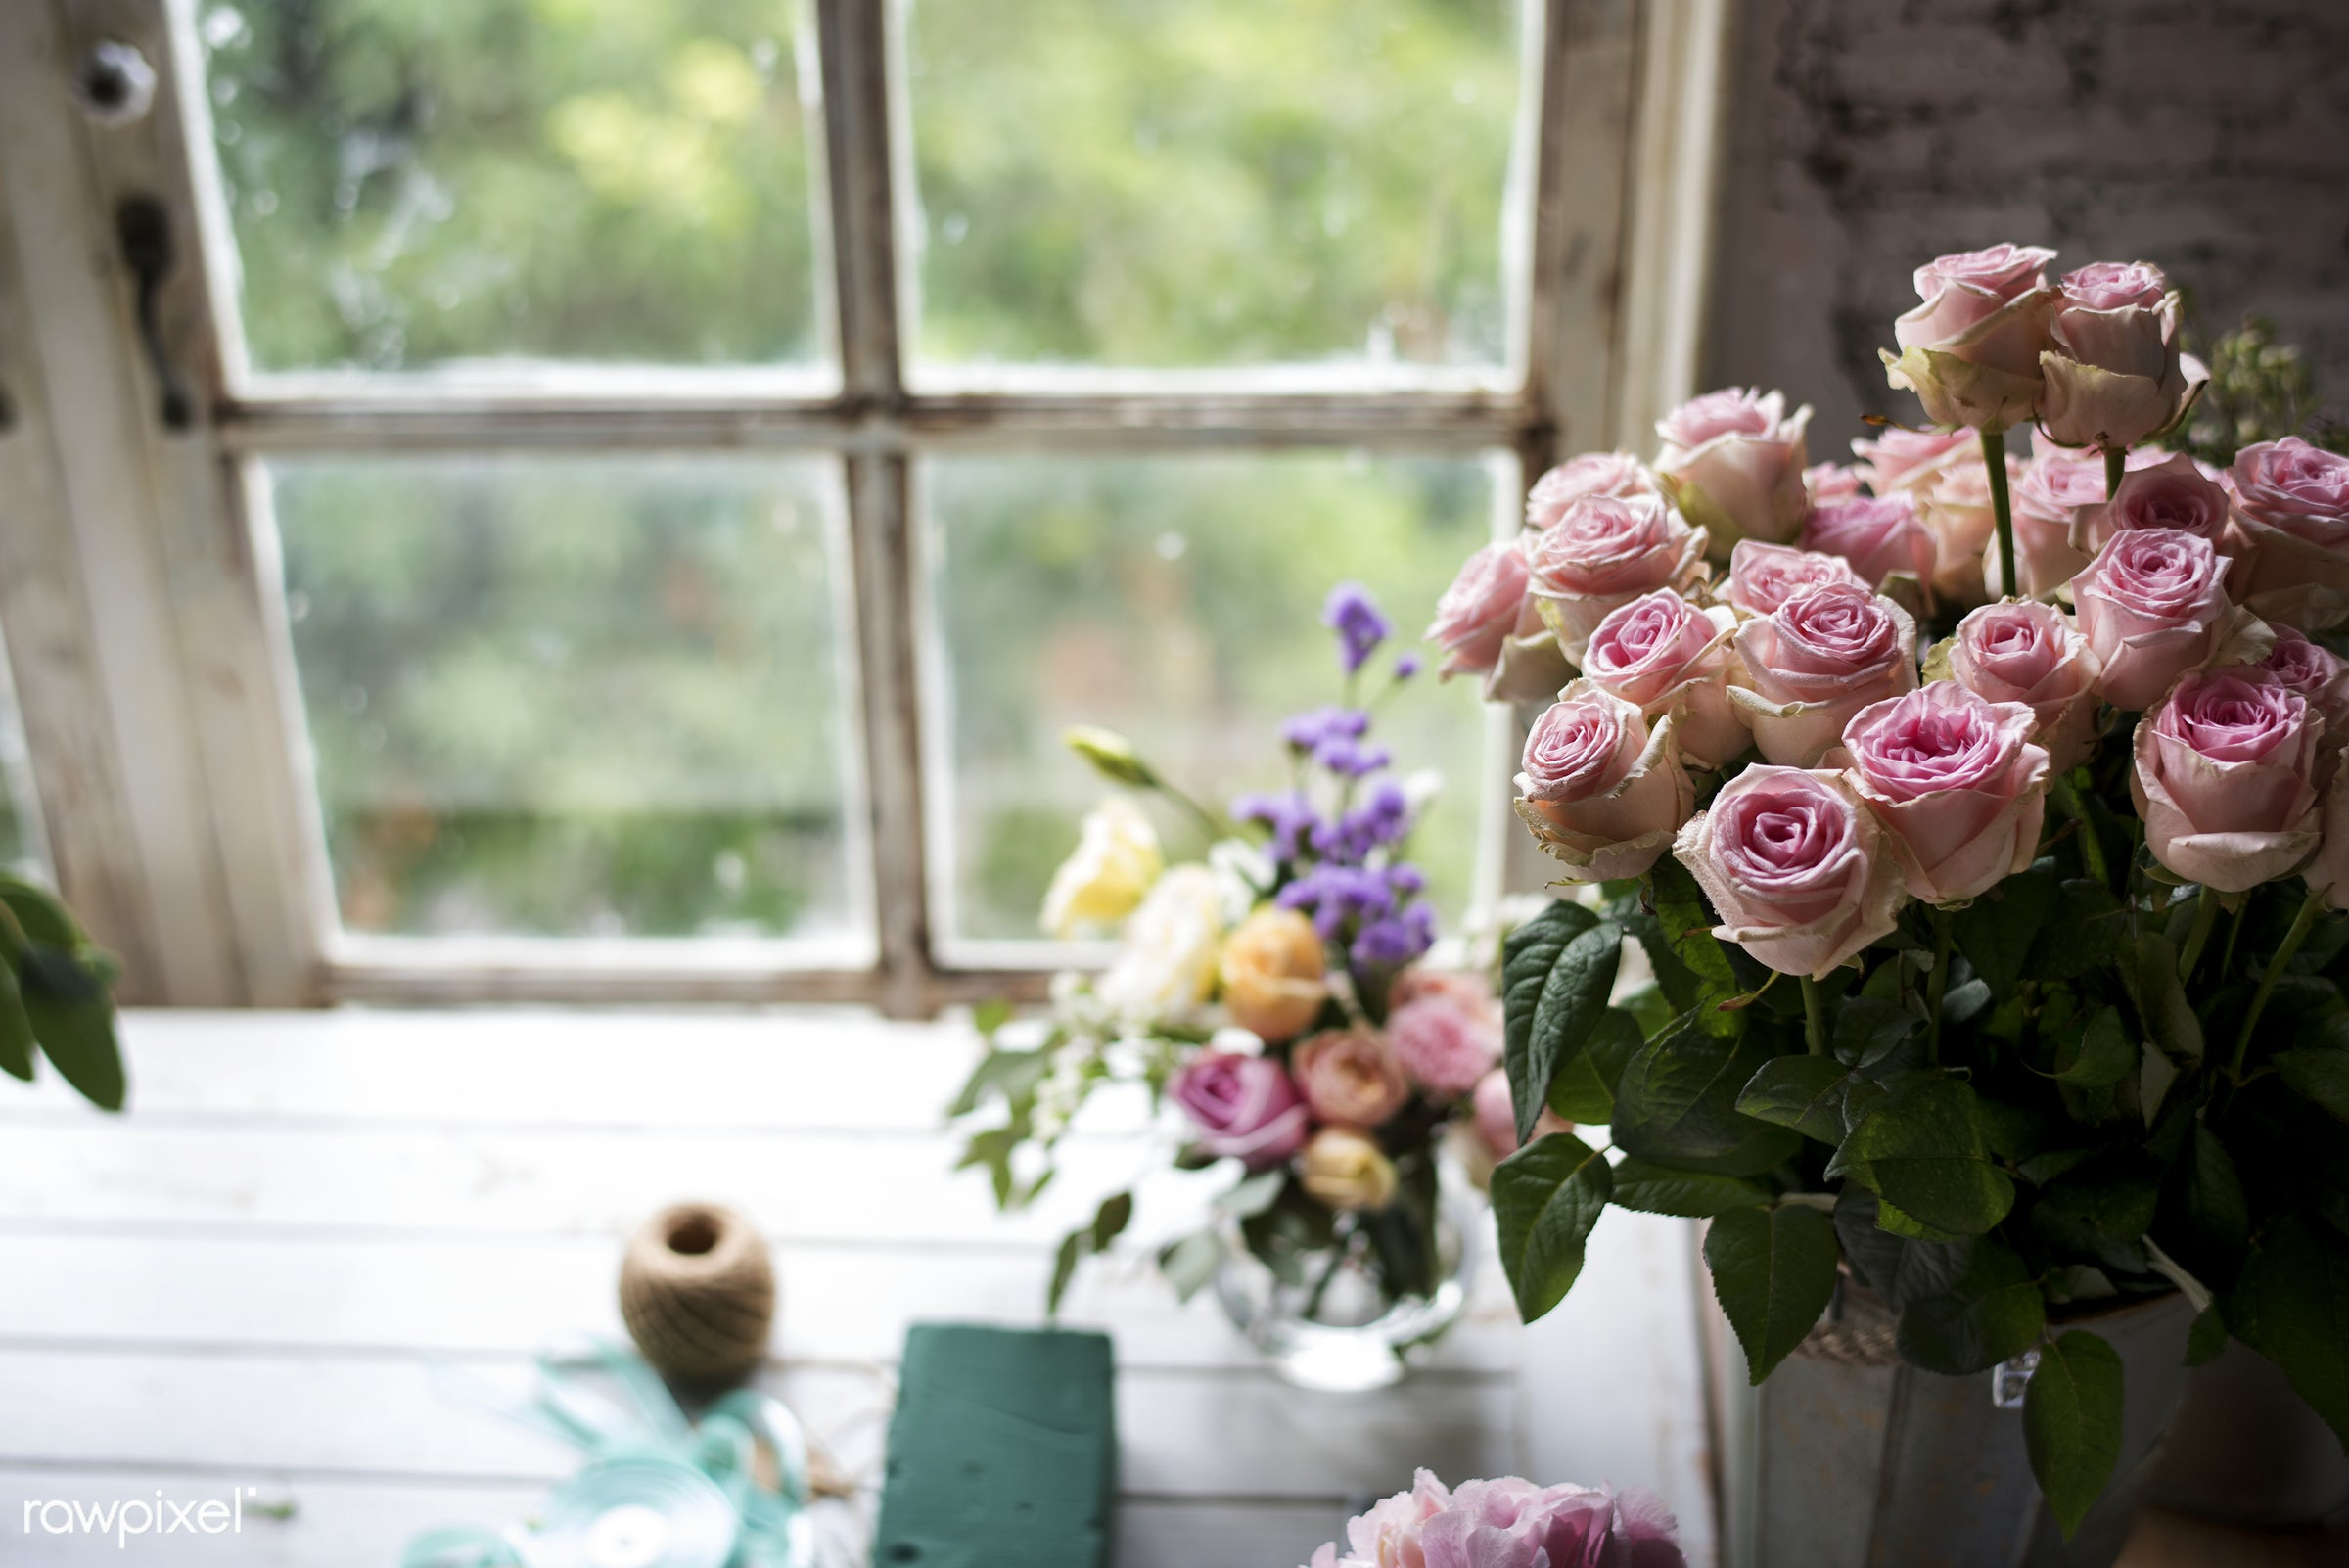 Closeup of a bouquet of roses - bunch, real, bouquet, fresh, flowers, natural, closeup, roses, window, pink